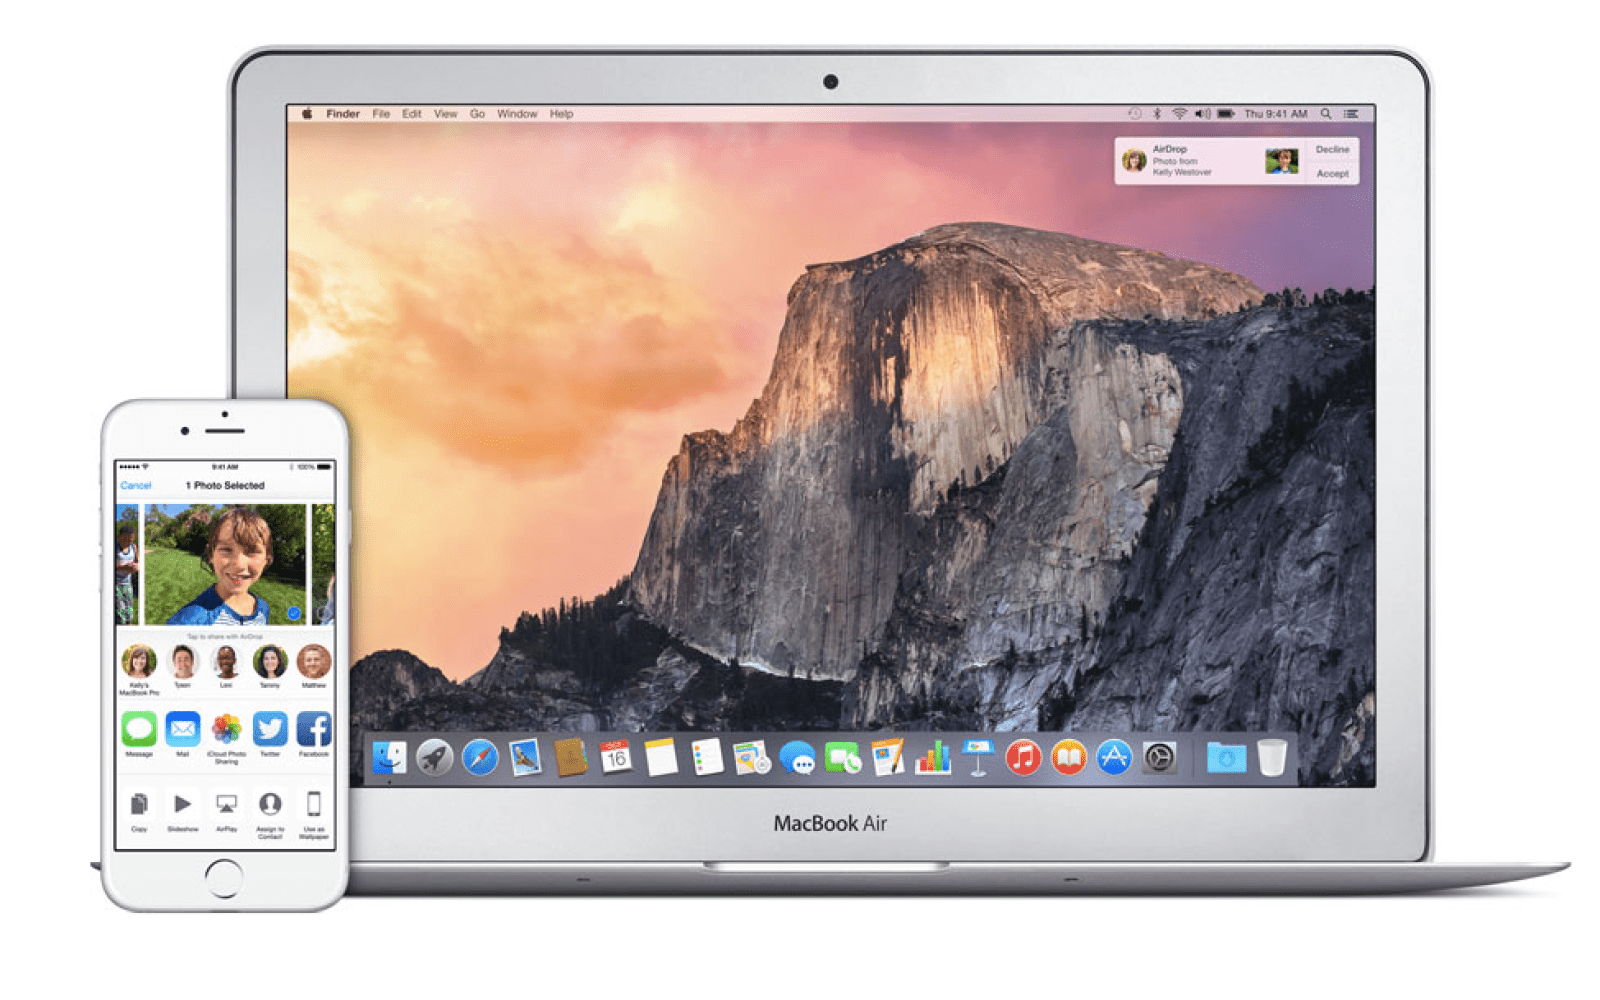 Yosemite Ios 8 How To Set Up And Use Airdrop 9to5mac